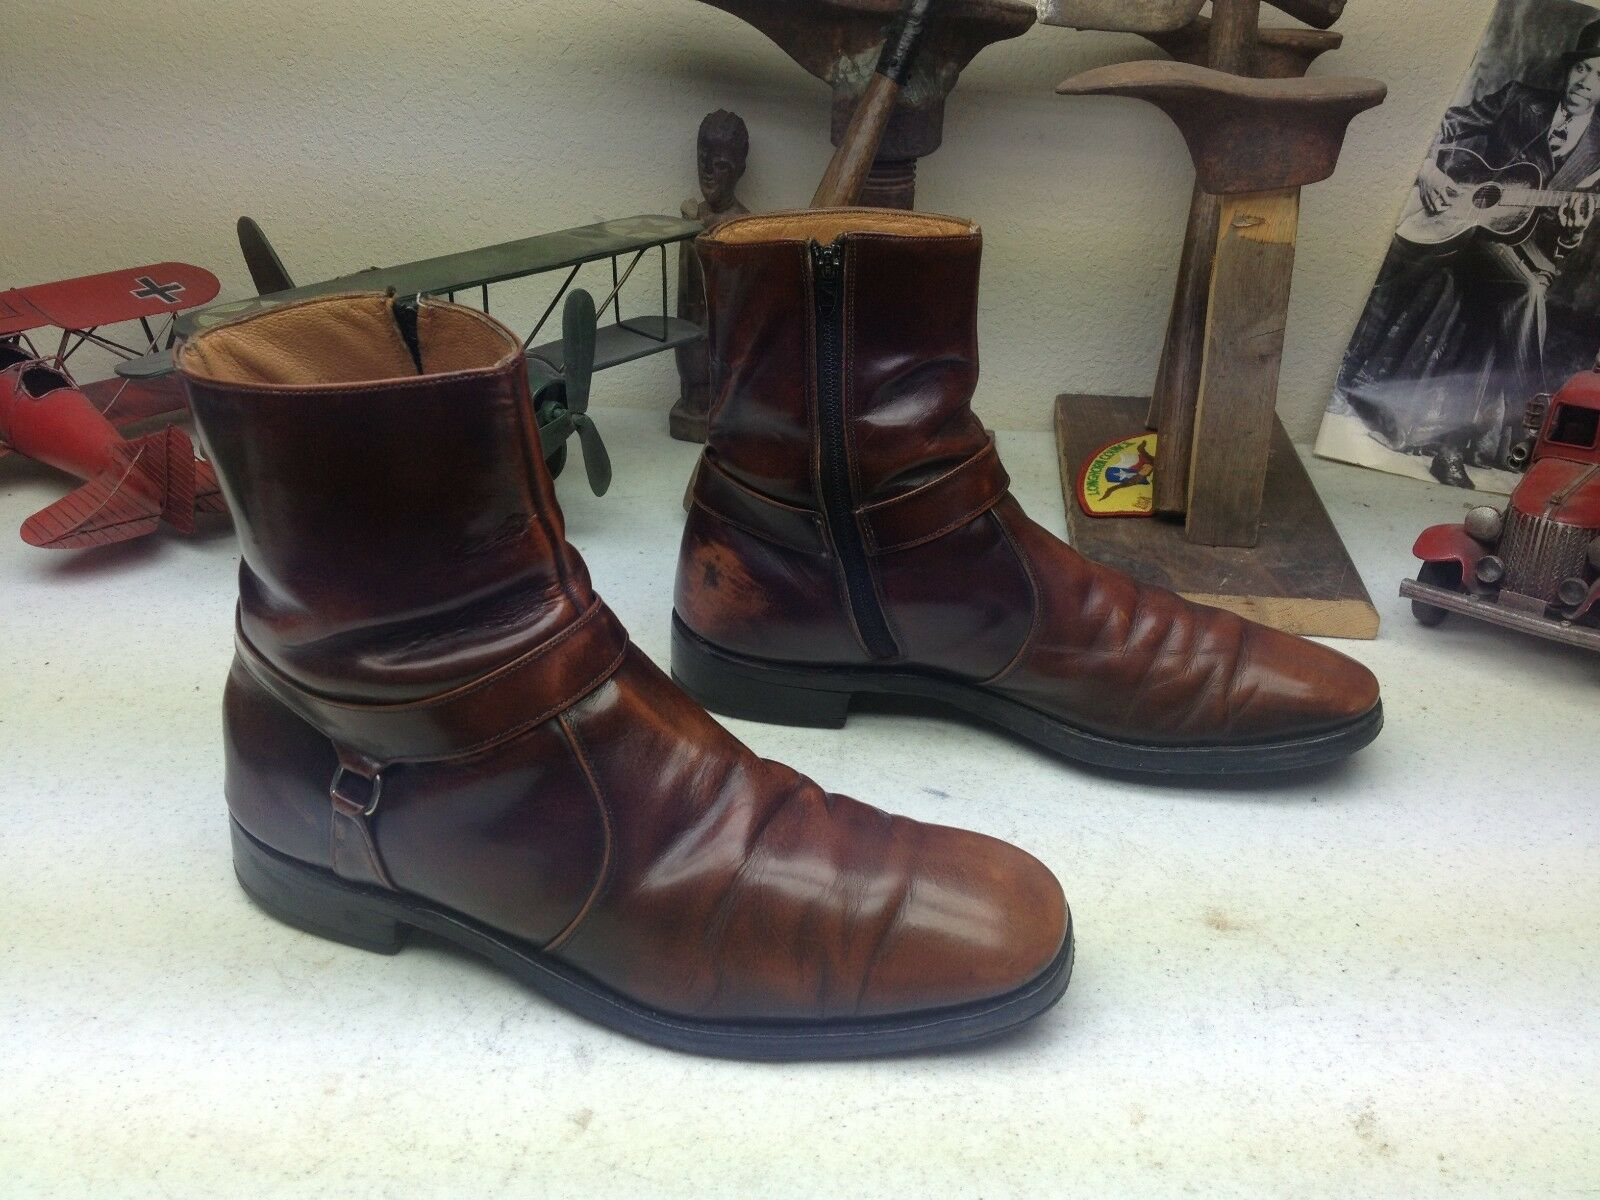 USA SQUARE TOE HIPSTER ZIP UP DISTRESSED LEATHER LEATHER LEATHER BROWN BOSS BEATLE BOOTS 10 C/A 3cd82e